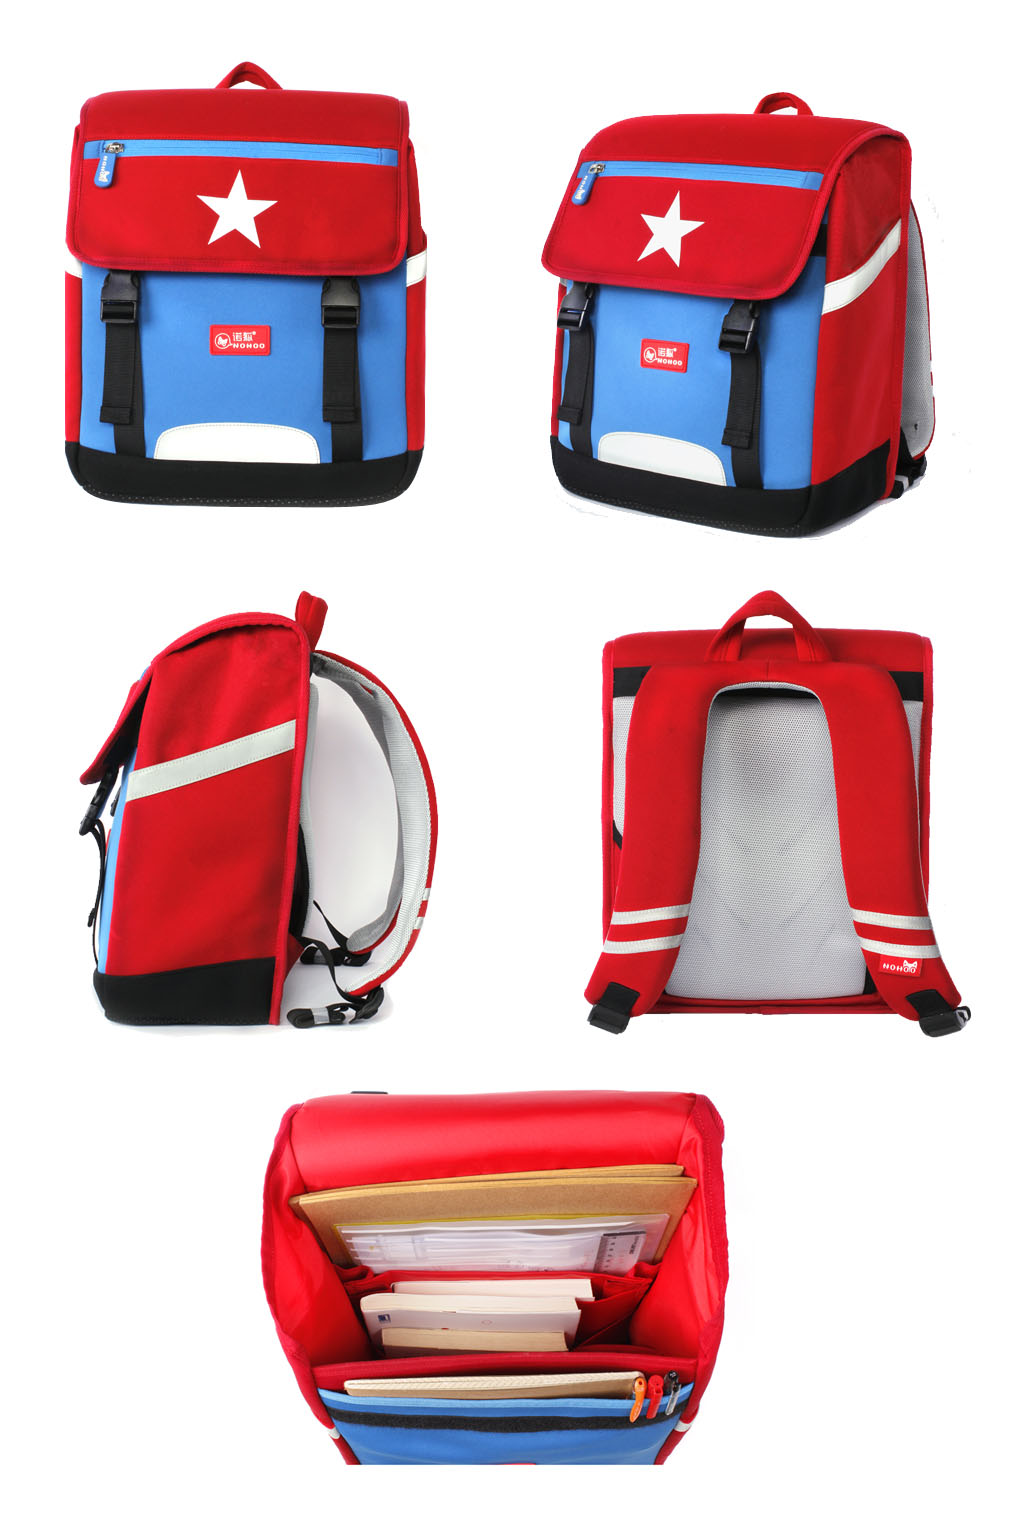 Nohoo Children Products-Professional Kids Backpacks Best Preschool Backpacks Manufacture